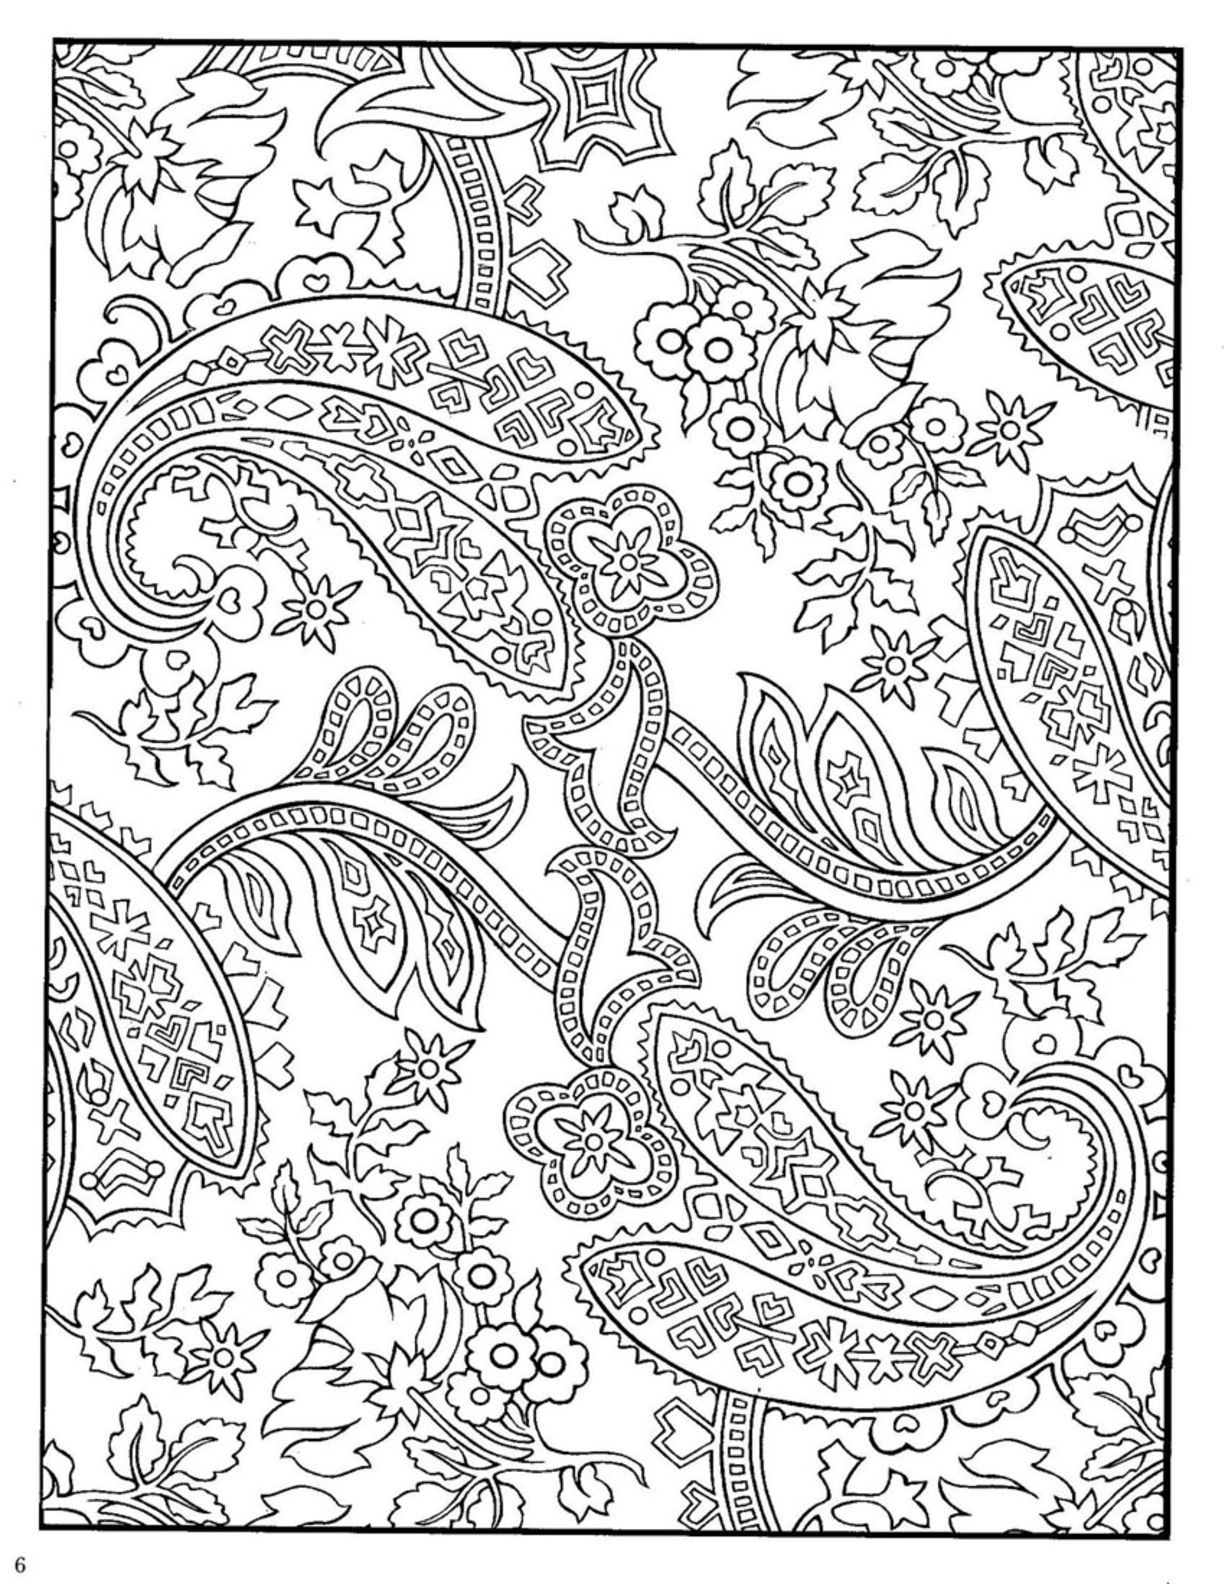 paisley pattern colouring book  Paisley coloring pages, Designs